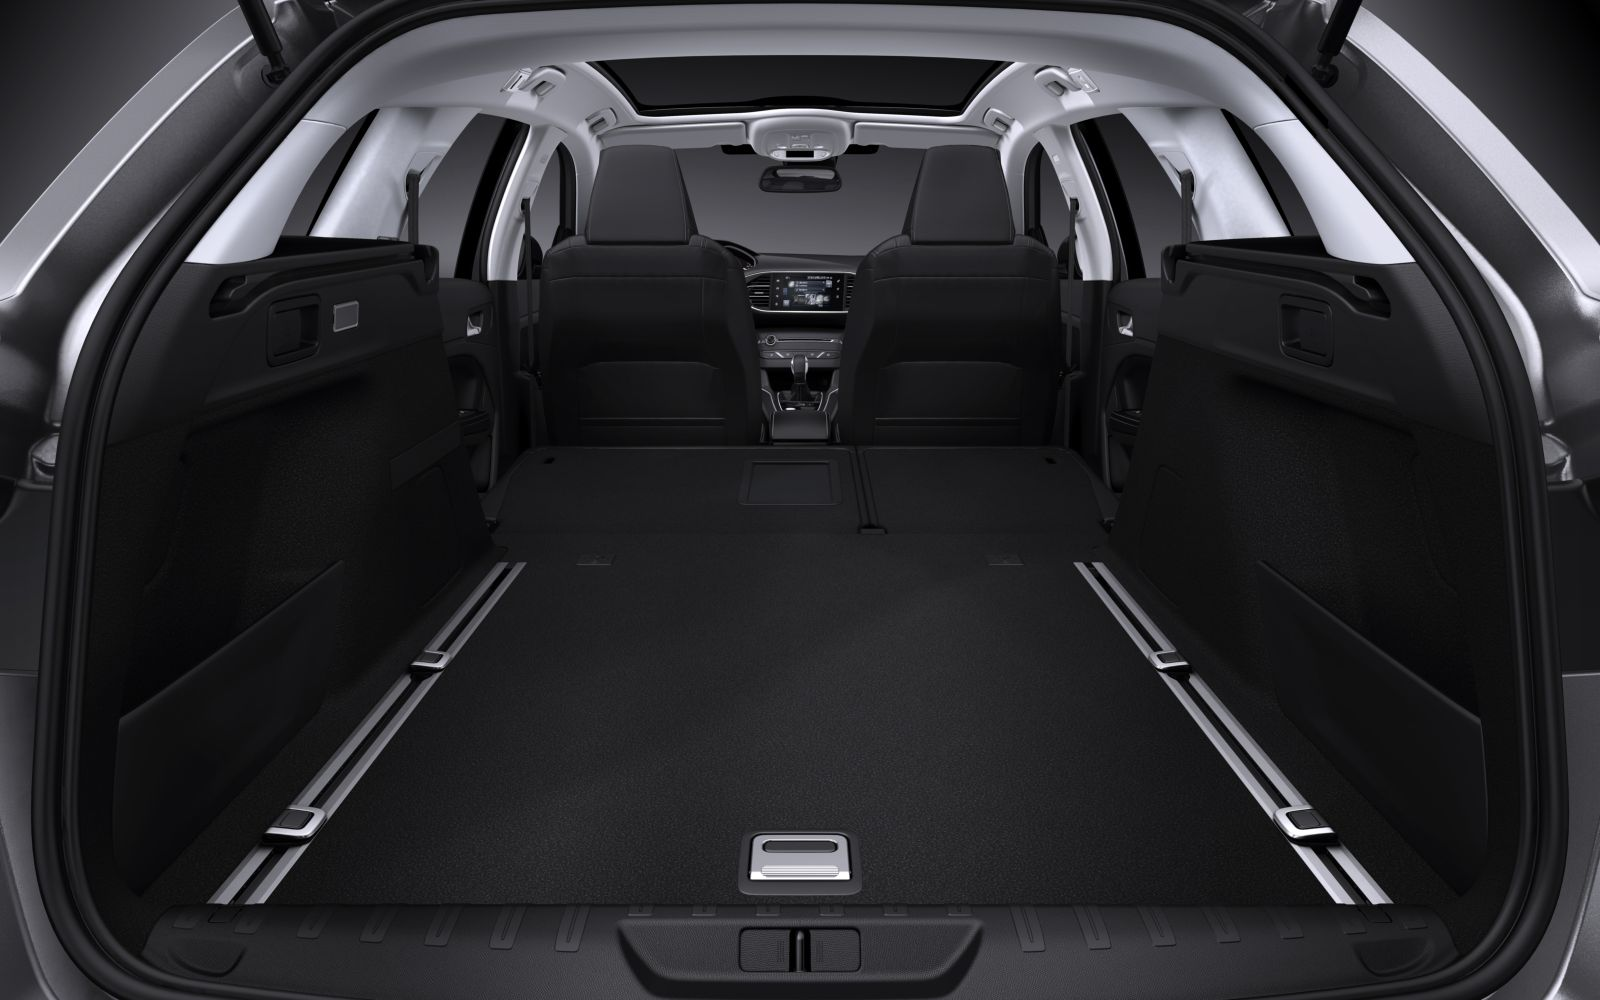 nouvelle peugeot 308 sw 2014 elle a du coffre. Black Bedroom Furniture Sets. Home Design Ideas